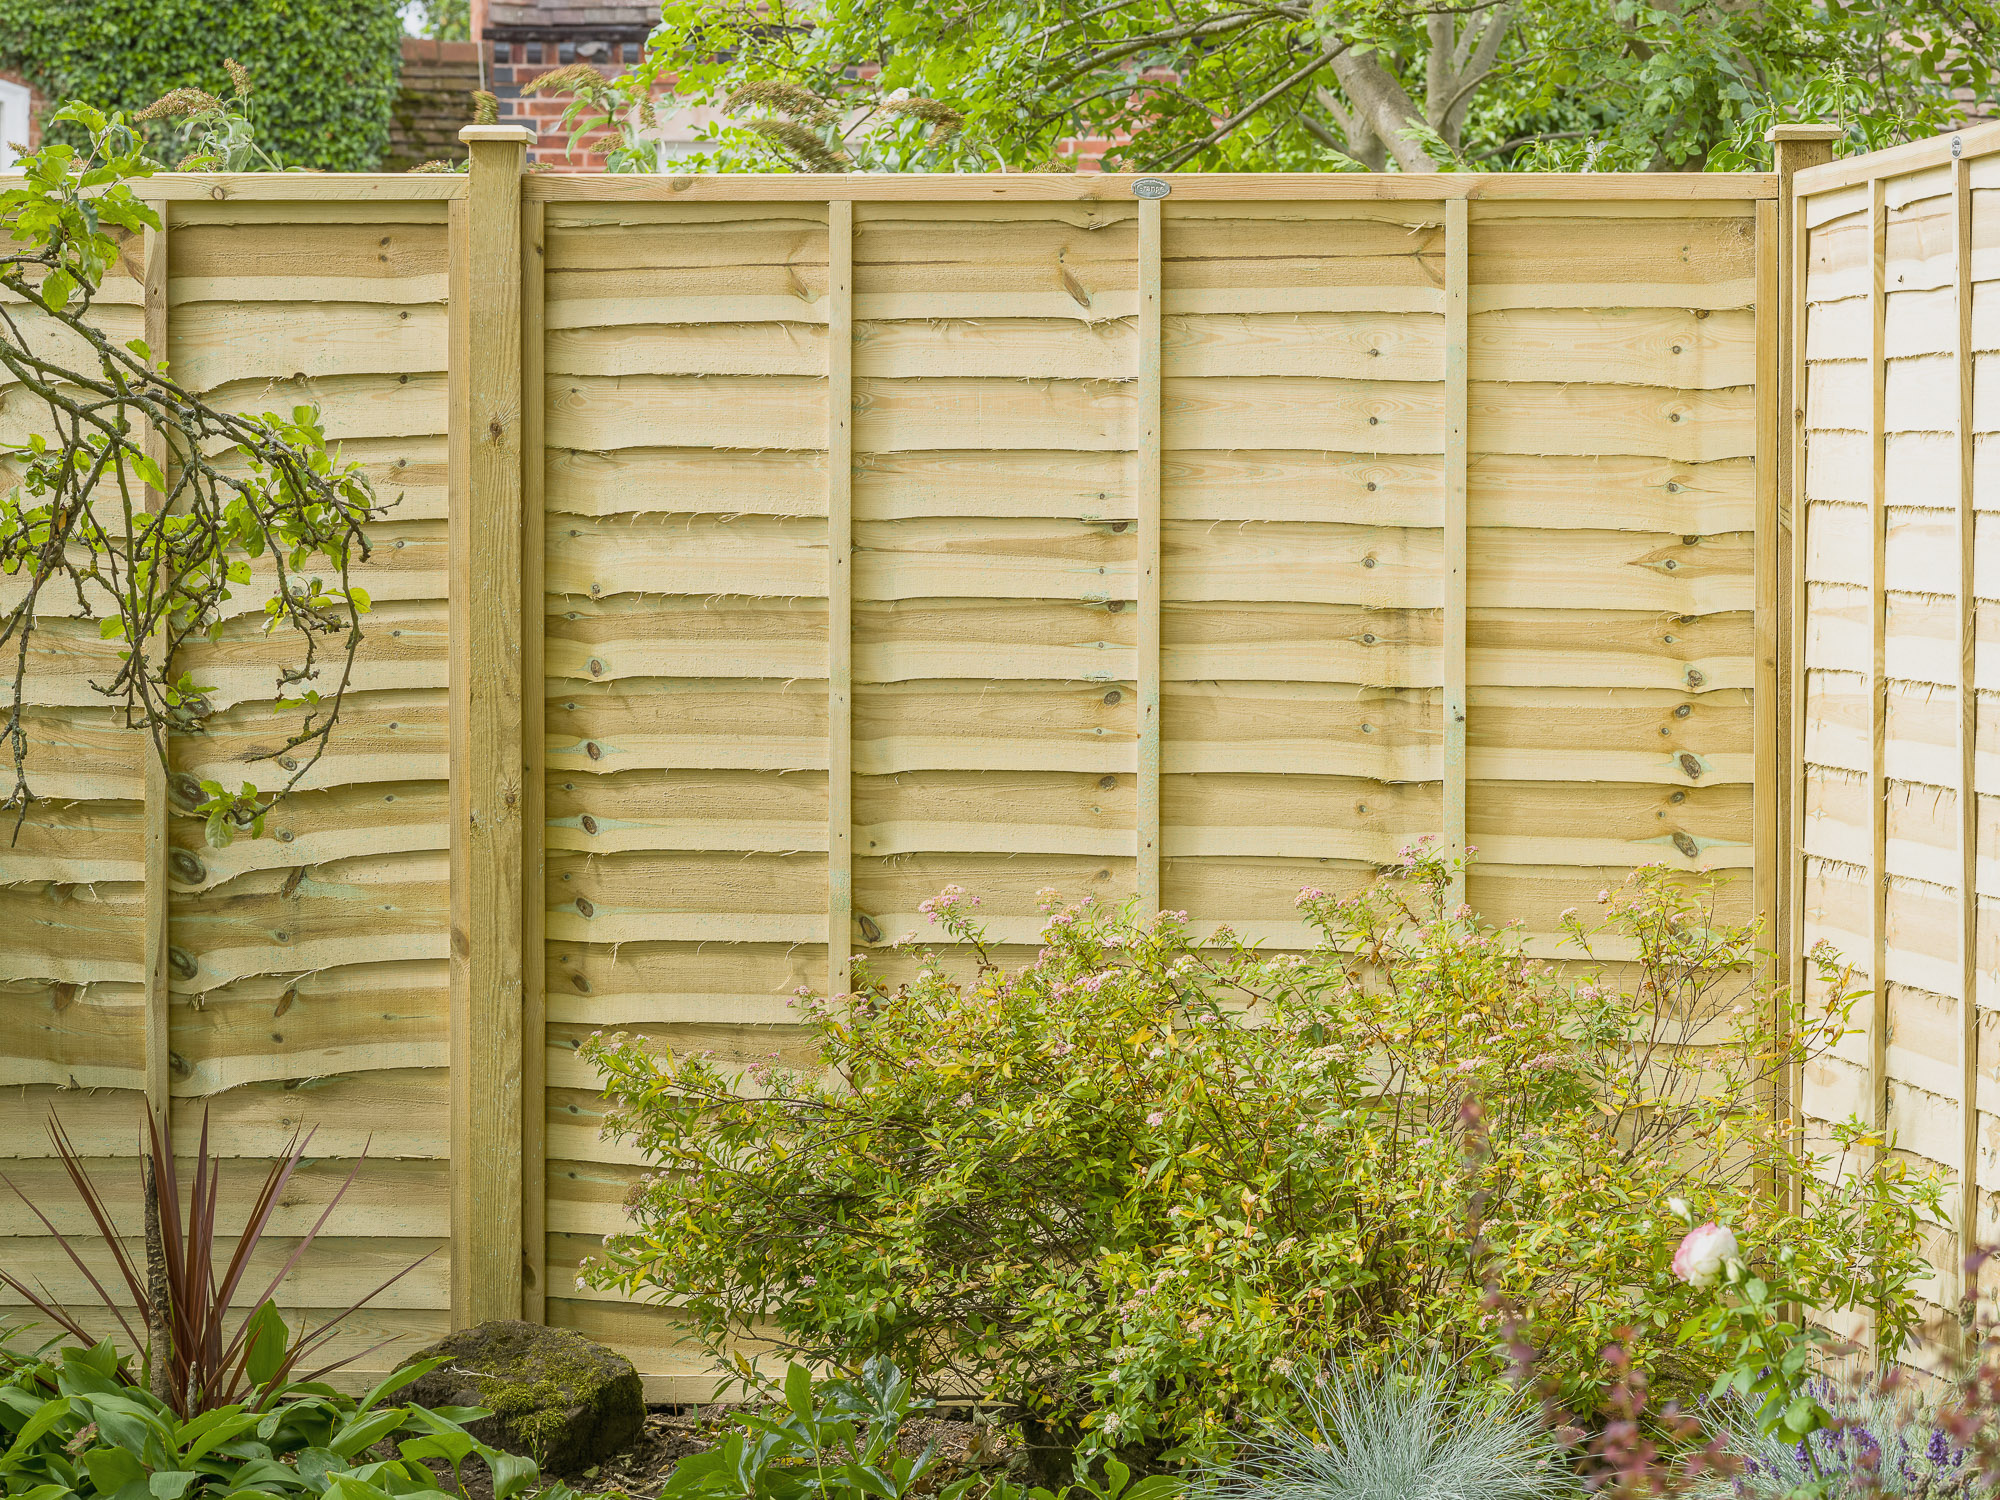 PROFESSIONAL LAP FENCE PANEL A stronger lap panel with three battens and new rebated frame construction. Available in a choice of three colours, pressure-treated golden brown, pressure-treated green or dark brown for protection against wood rot and fungal decay.